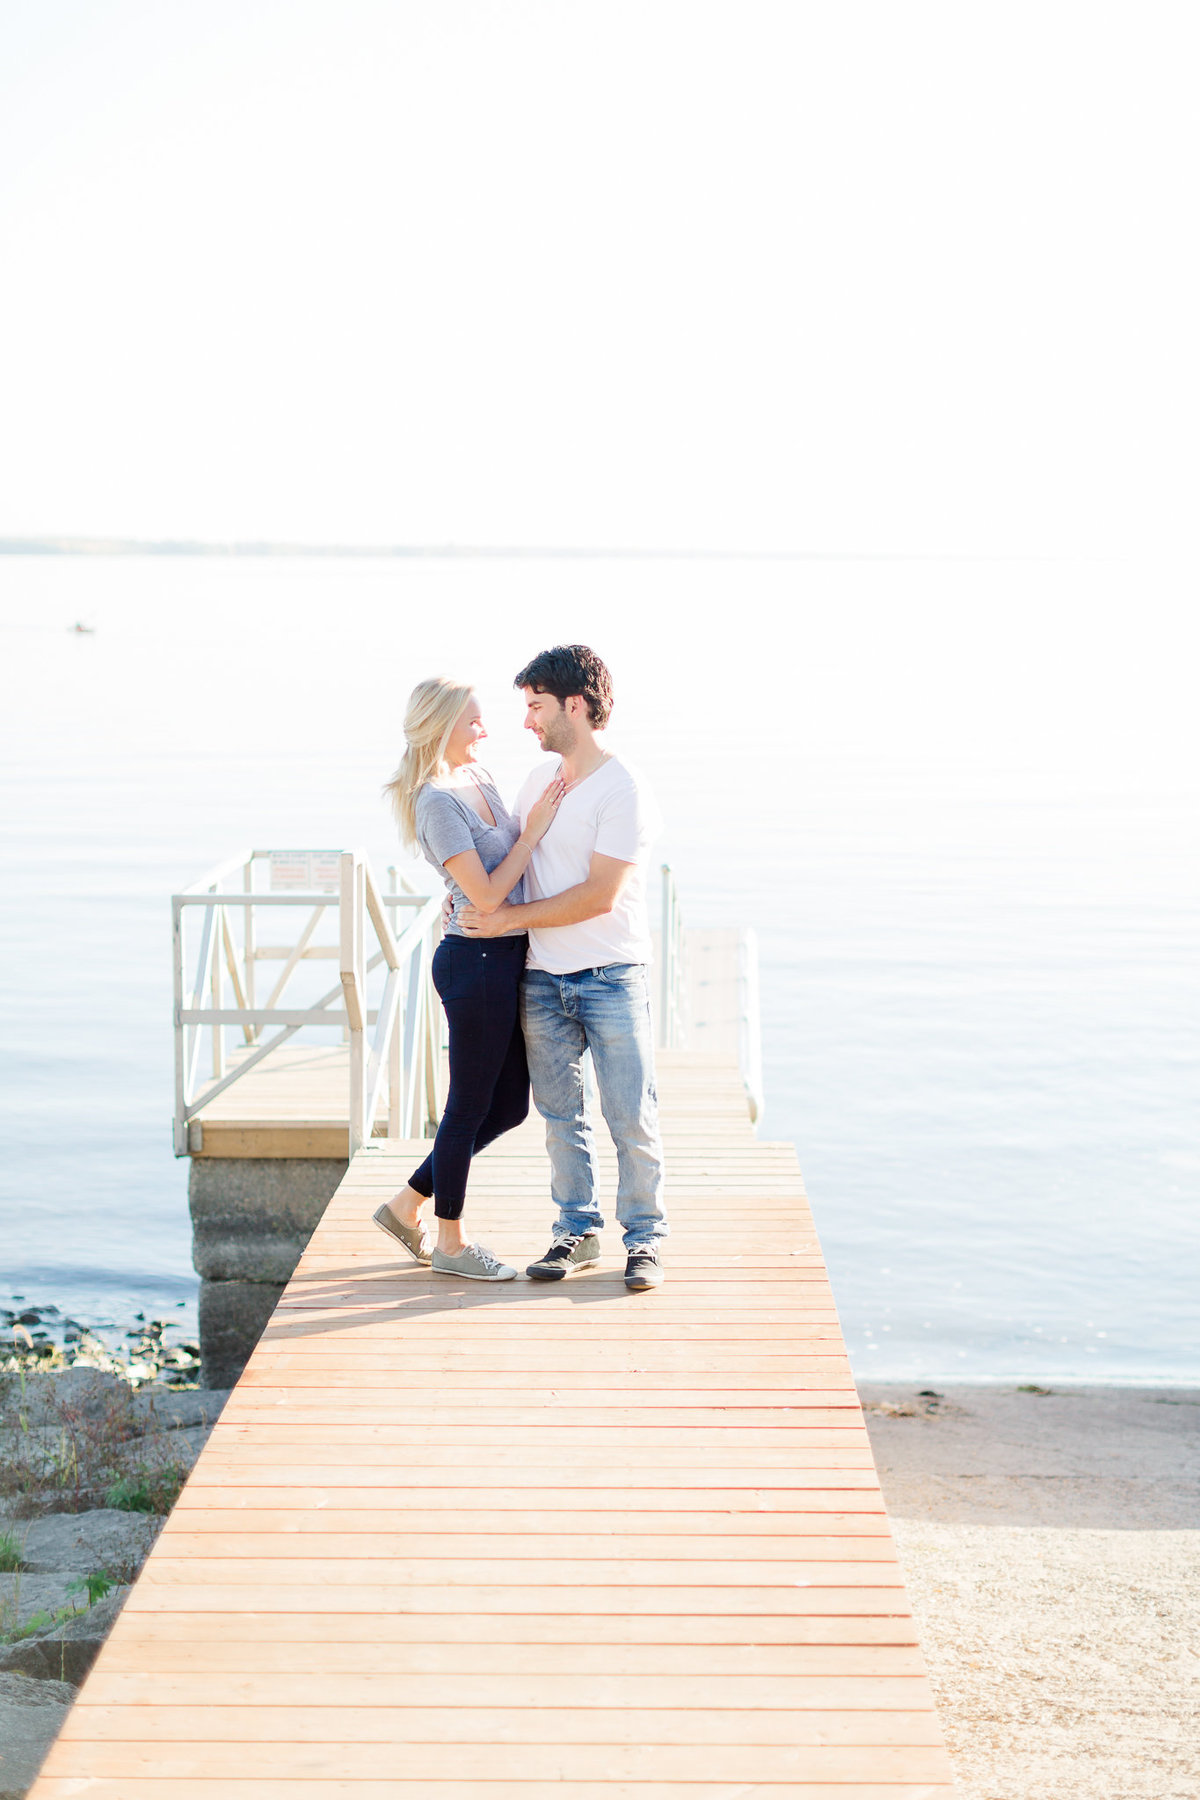 seance-fiancailles-photographe-montreal-lisa-renault-photographie-engagement-session-photographer-40